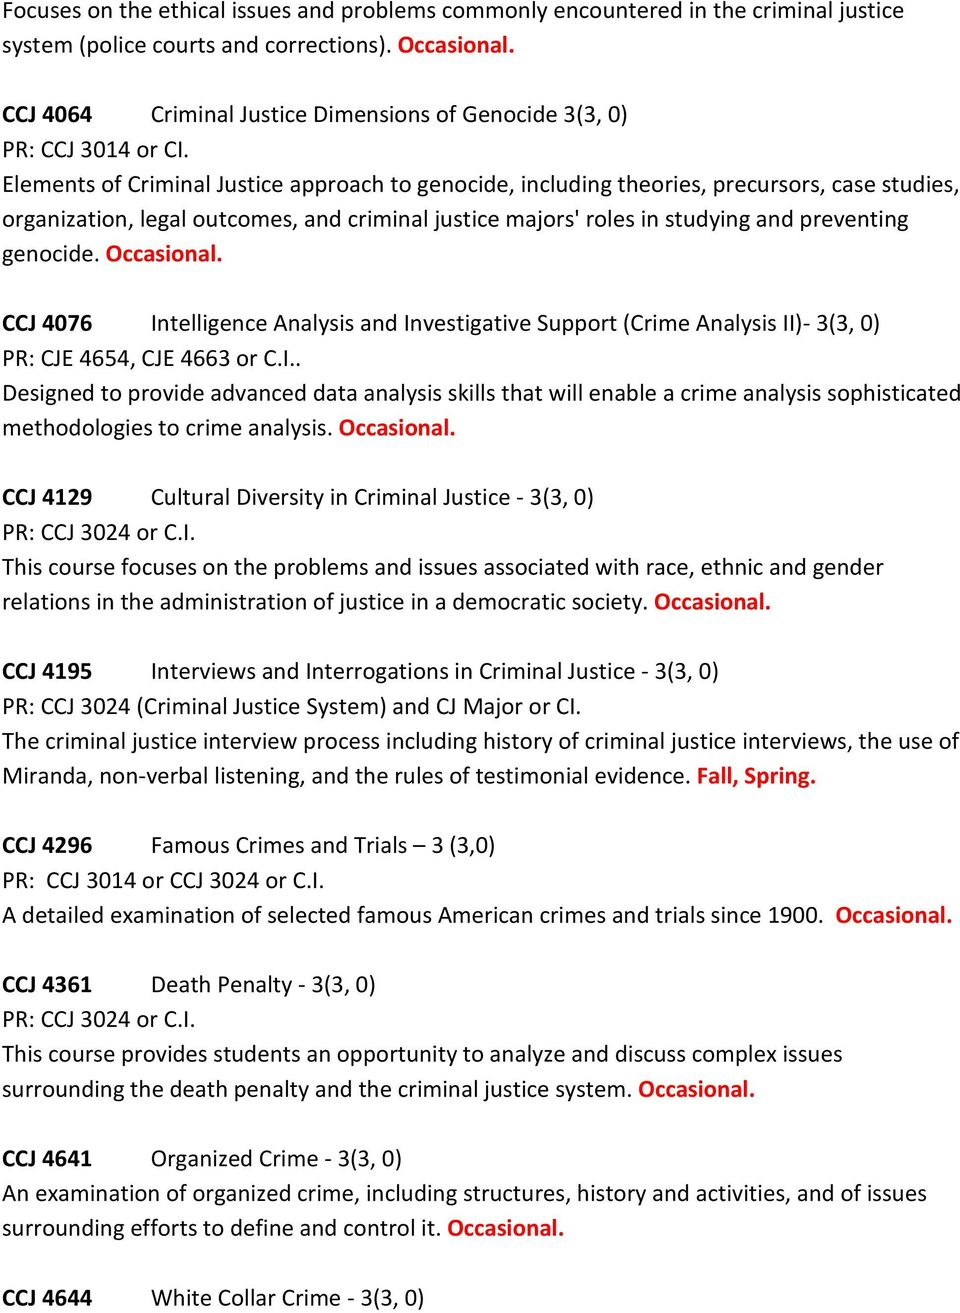 Elements of Criminal Justice approach to genocide, including theories, precursors, case studies, organization, legal outcomes, and criminal justice majors' roles in studying and preventing genocide.